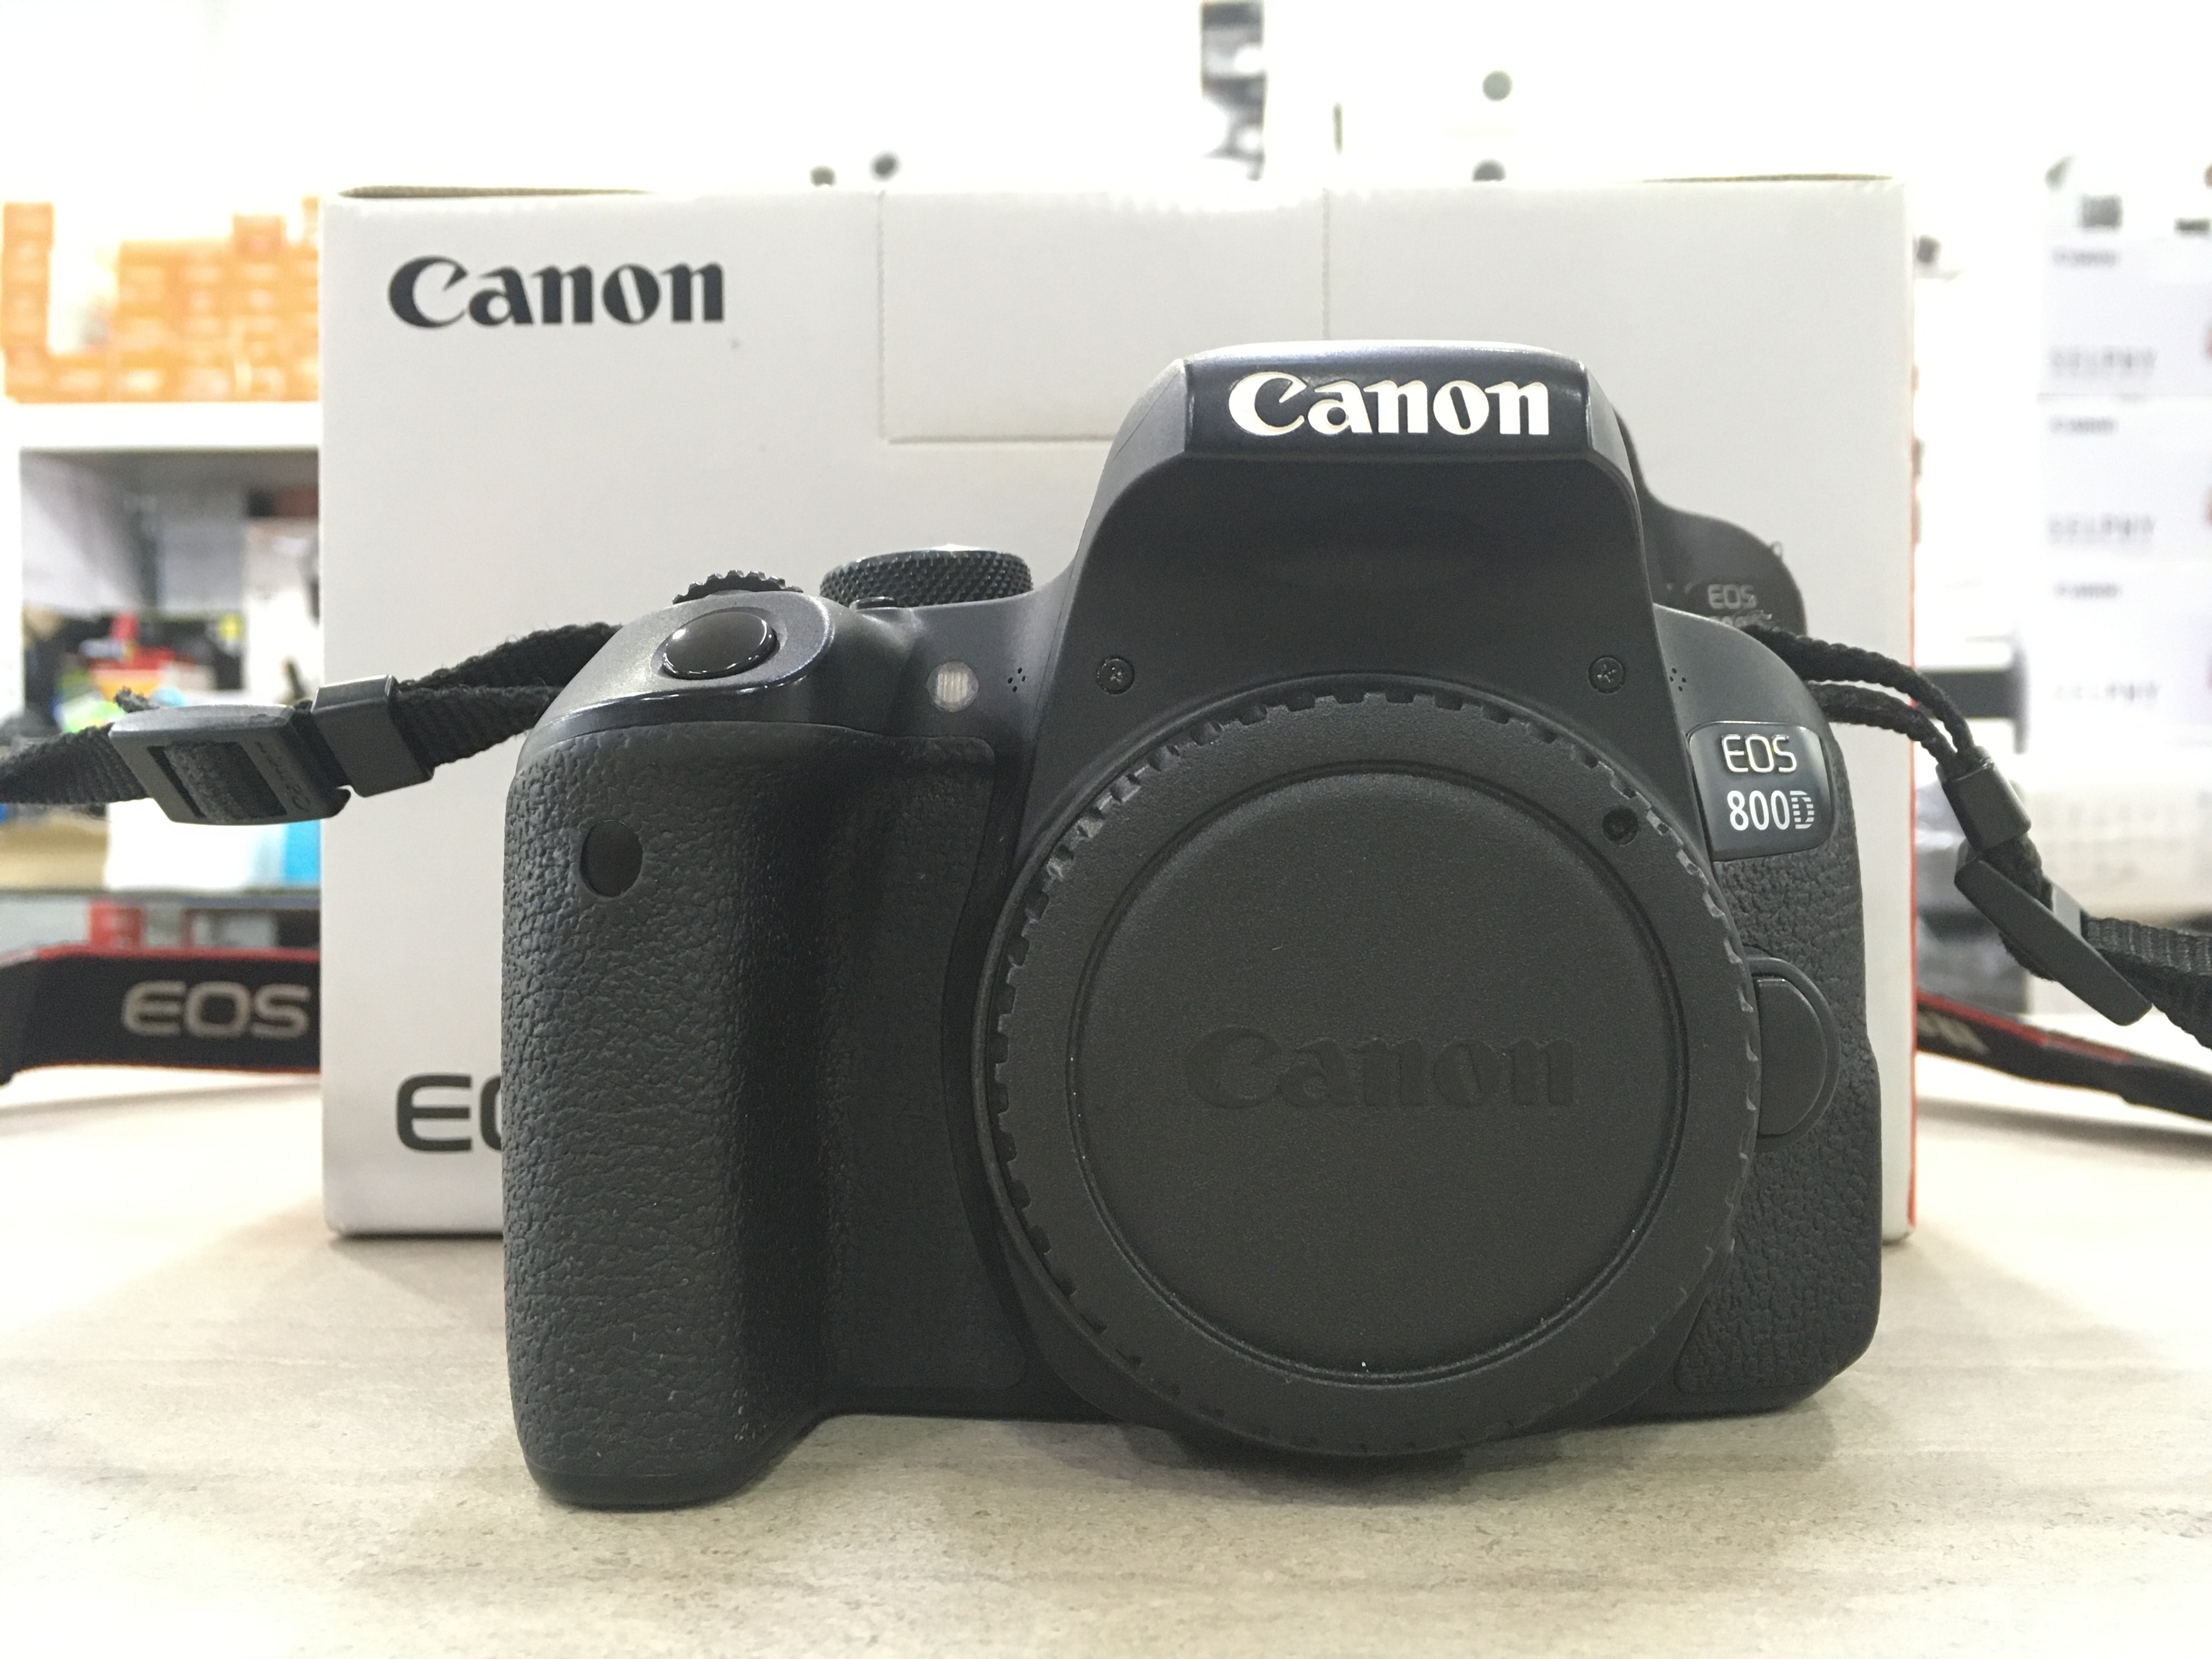 Used - Canon EOS 800D (Body Only)